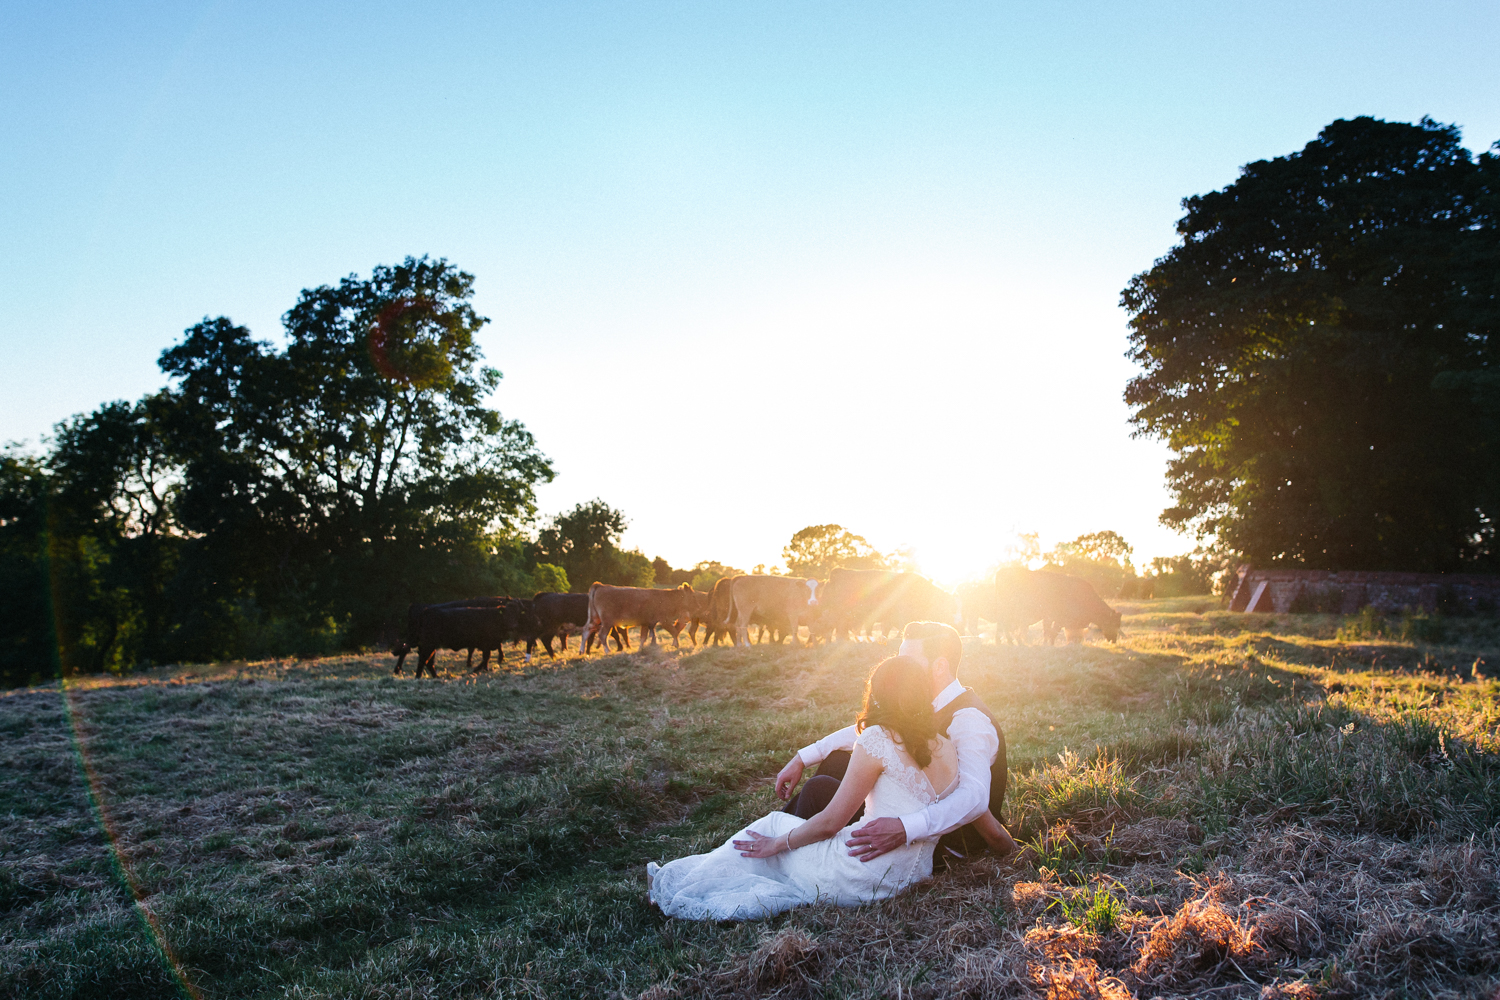 a bride and groom sit in golden llight in a field, there are cows in the distance